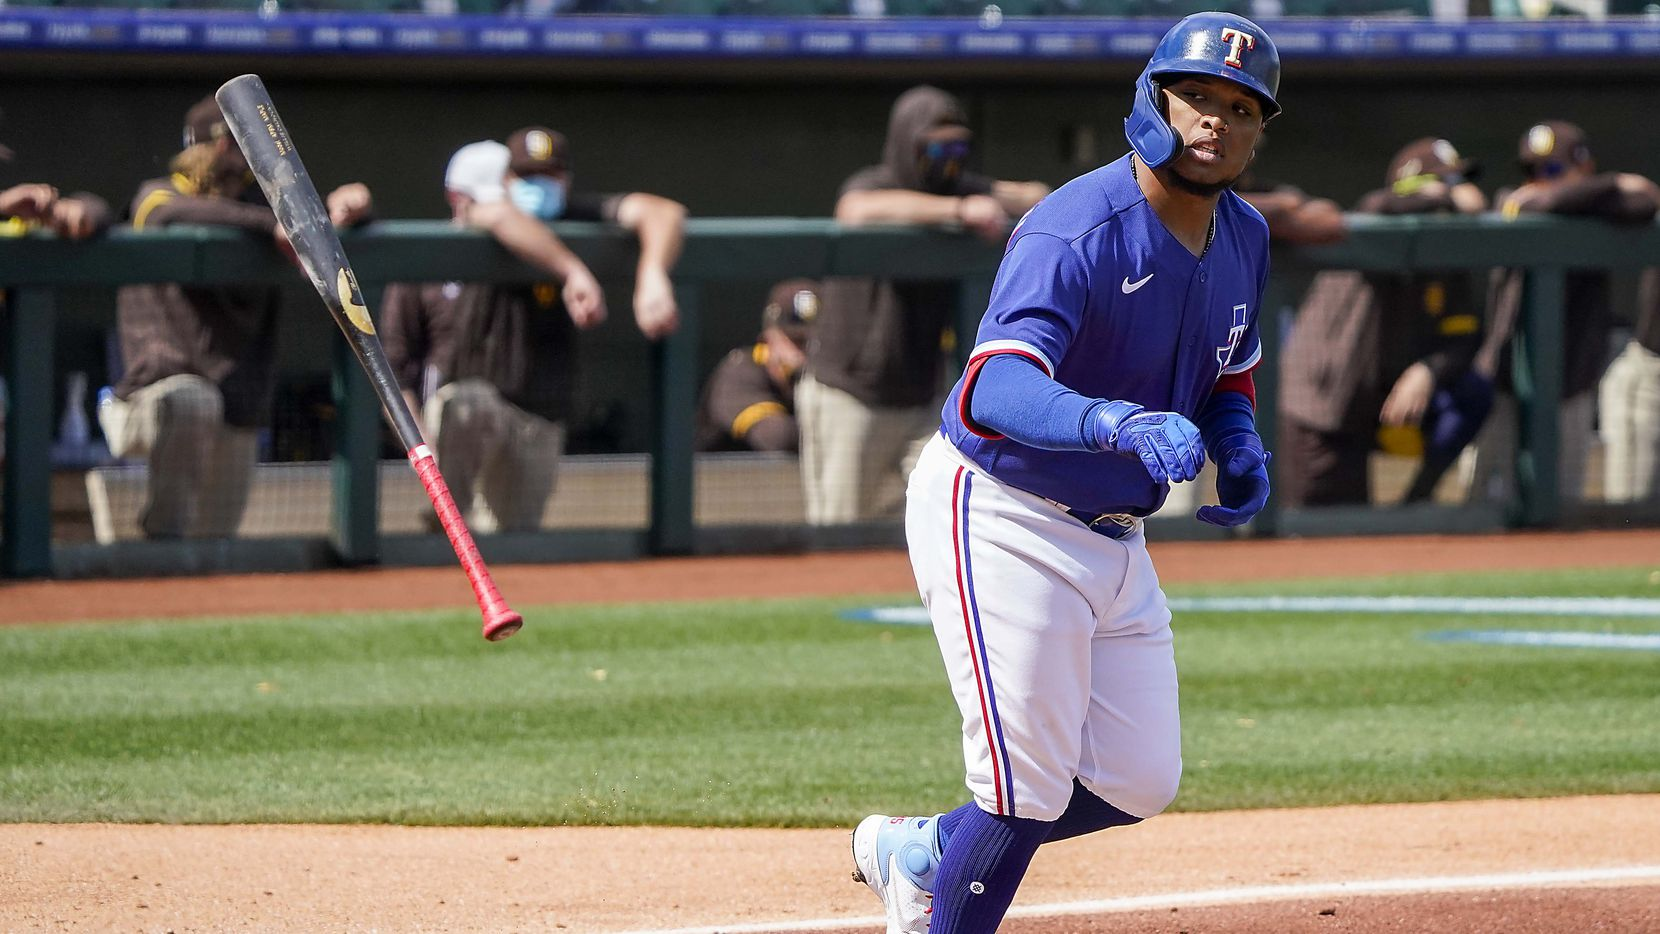 Texas Rangers outfielder Willie Calhoun heads for first base after drawing a walk during the first inning of a spring training game against the San Diego Padres at Surprise Stadium on Thursday, March 4, 2021, in Surprise, Ariz.